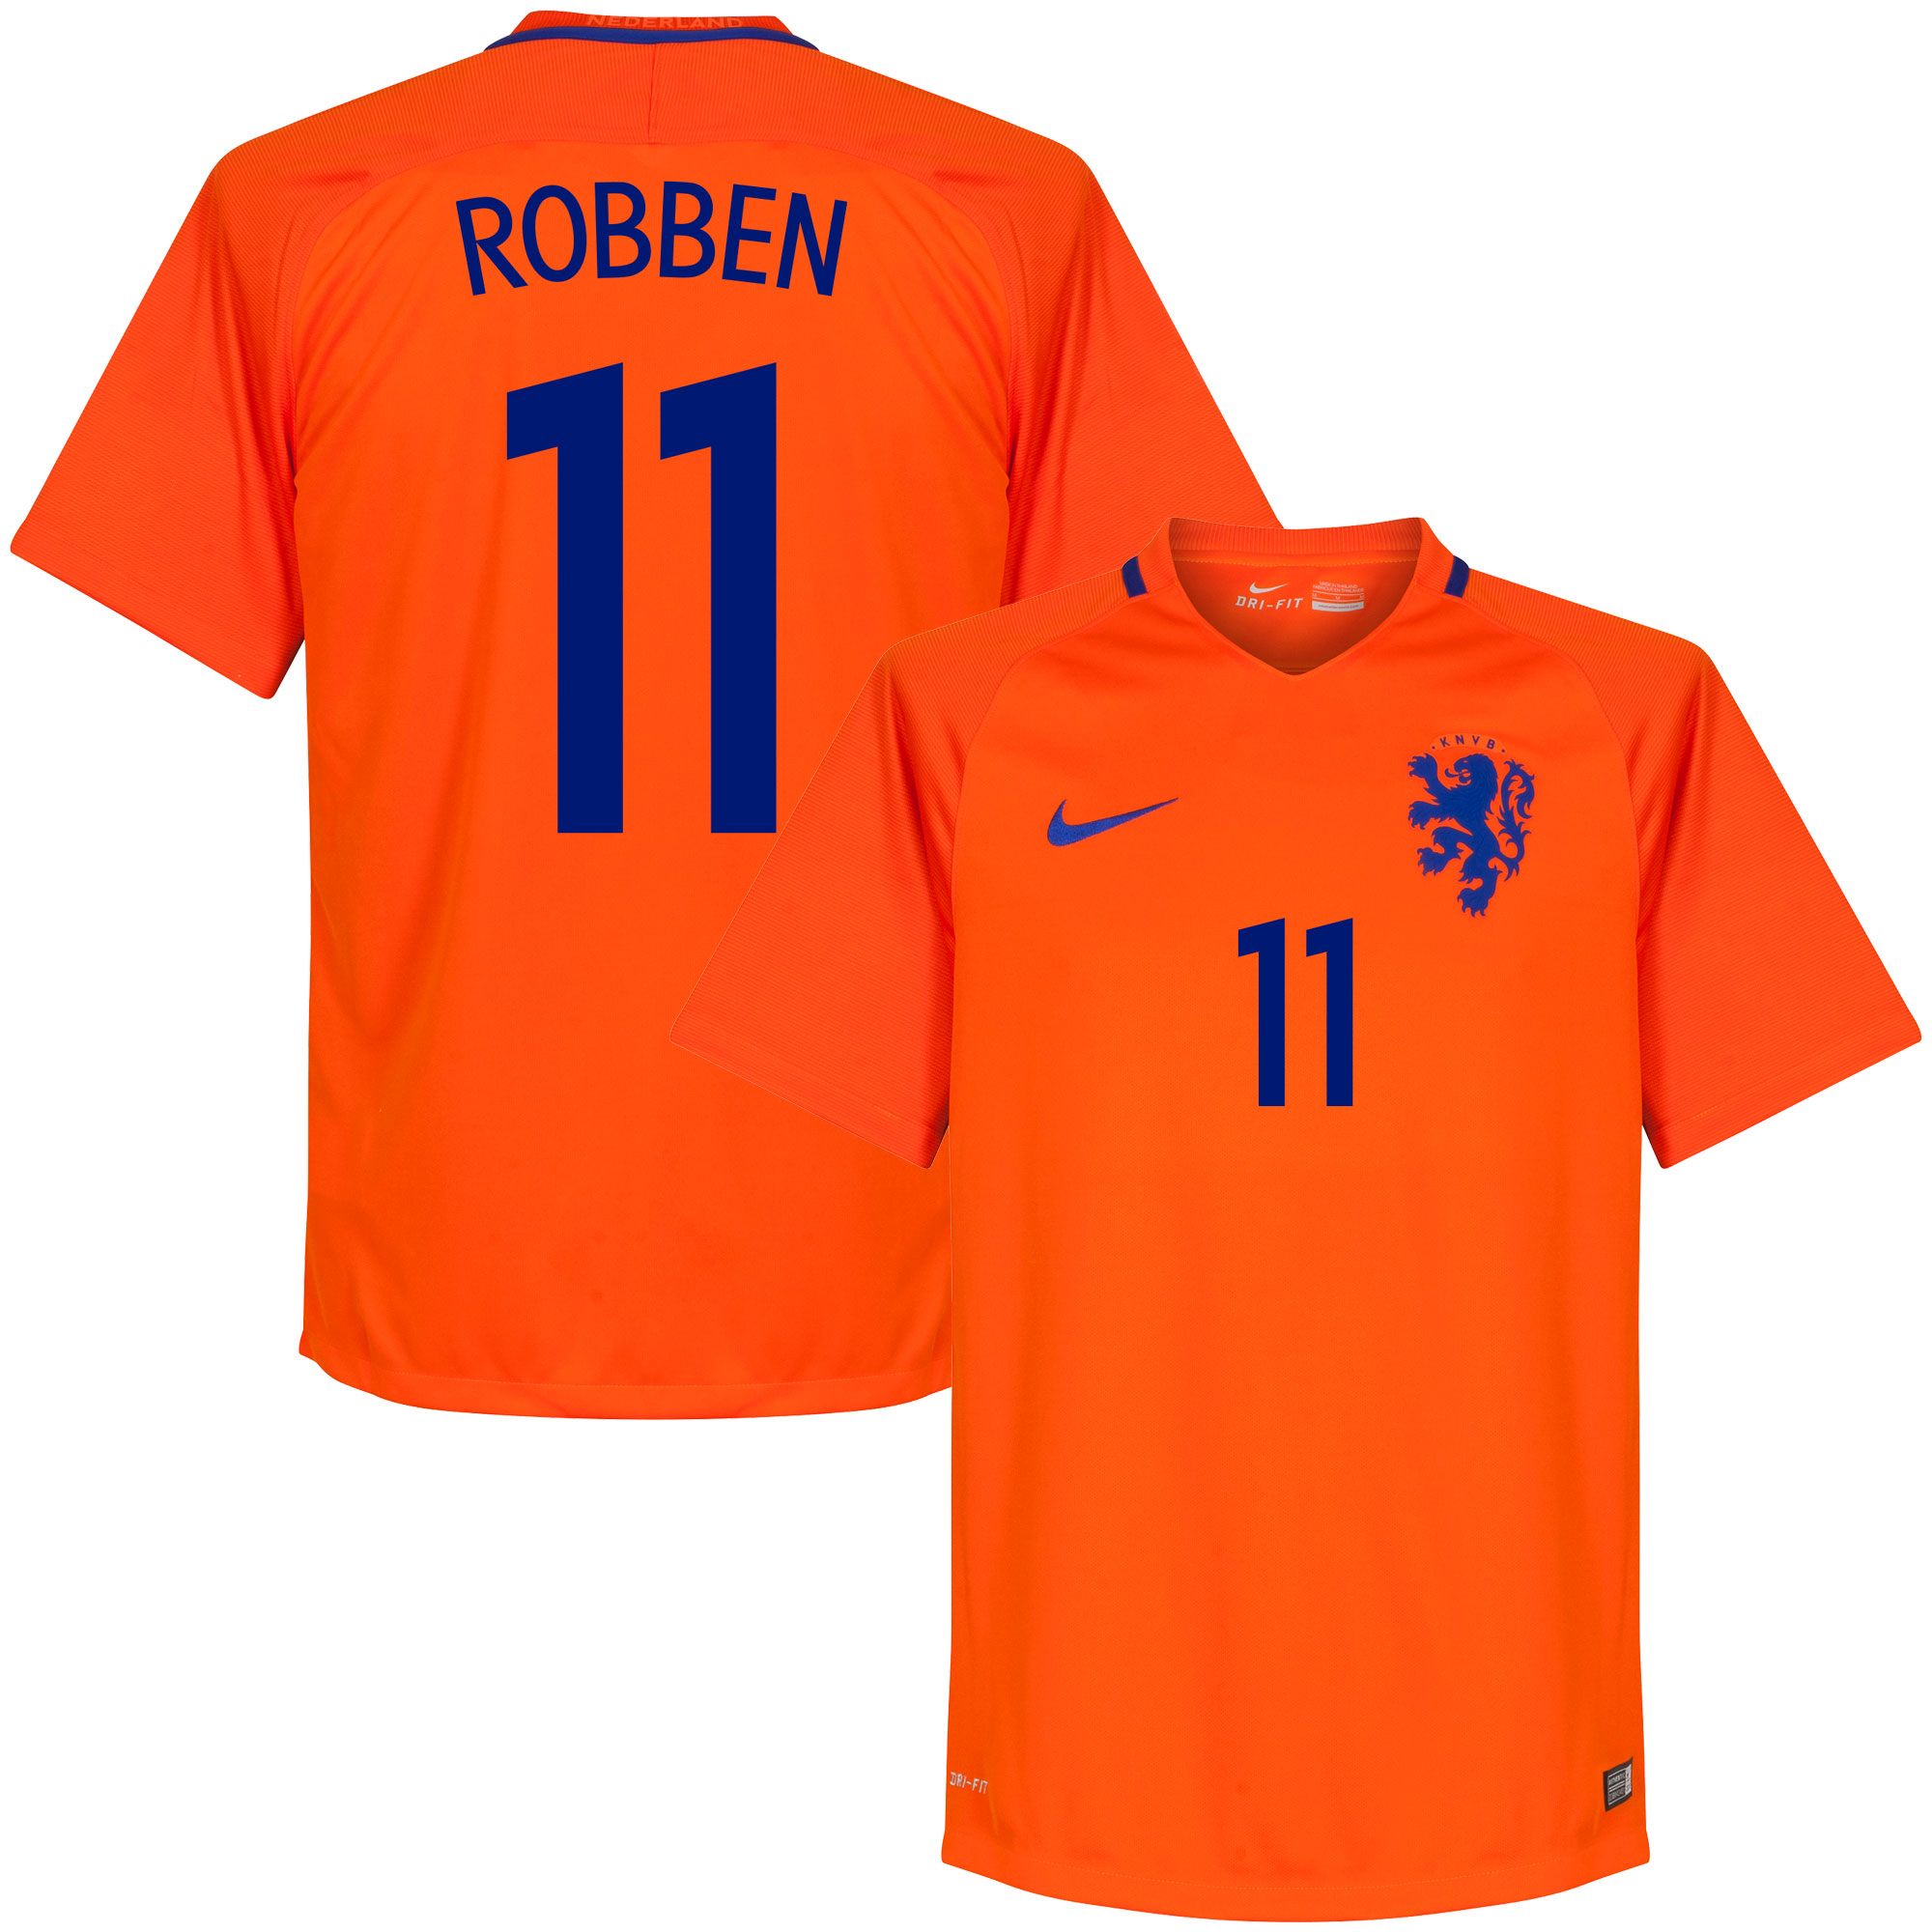 Holland Home Robben Jersey 2016 / 2017 (Fan Style Printing) - M